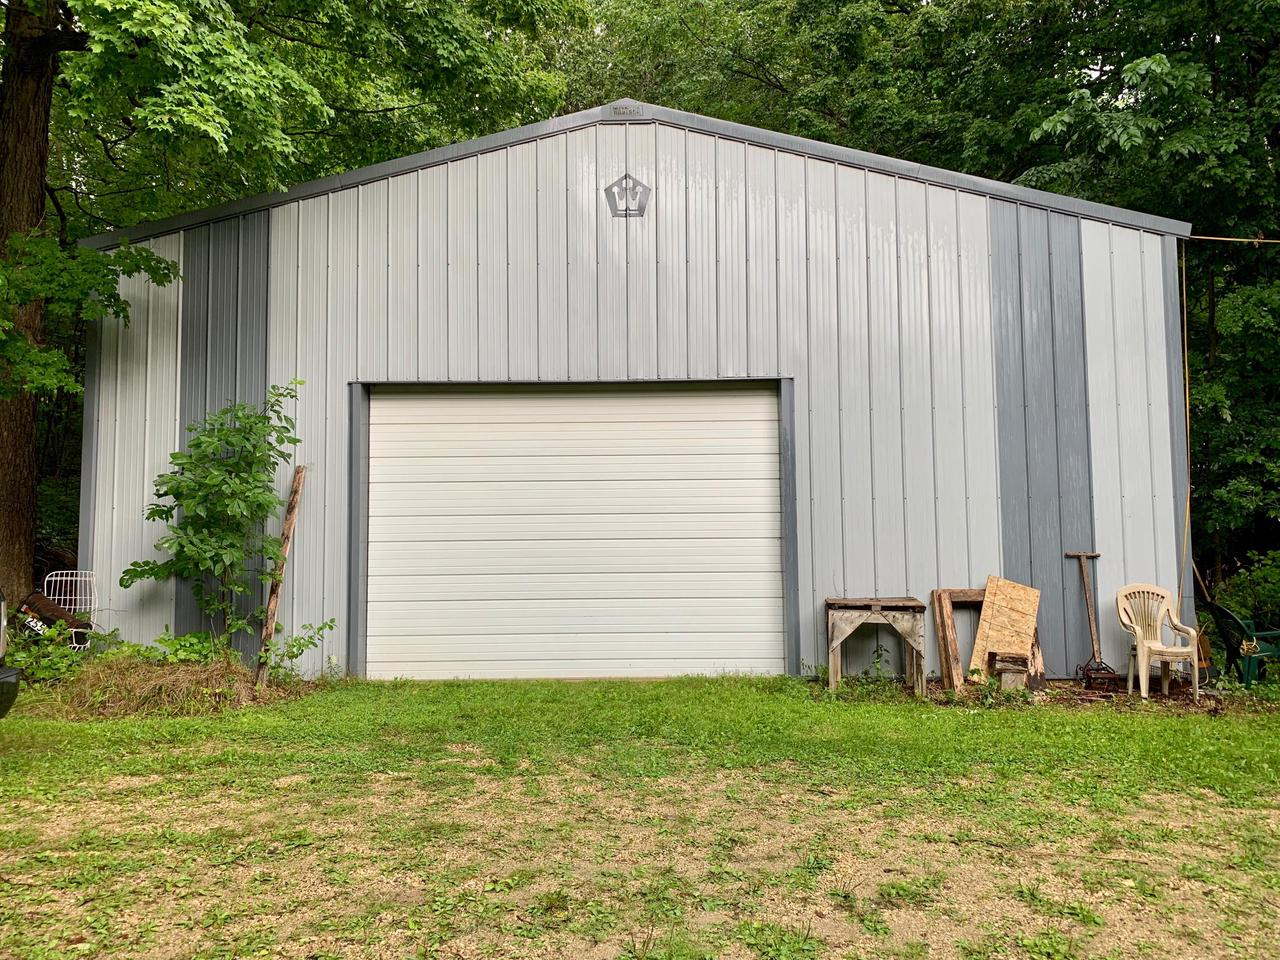 Bring your tool belt and ideas and build equity in this spacious 1-owner, 3BR 2Ba home! This raised ranch set on 4.43 rolling, wooded acres needs someone willing to dig into a project! Big LR features fieldstone natural fireplace leading to the beamed cathedral ceiling. The 35 x 70 FULLY INSULATED SHED is everyone's dream for storage and gives you a place to work while you bring back the house. Lot is fully wooded with rolling terrain and some paths for wandering. Trim a few trees and see for miles. Nice country drive to Hartford or Slinger OR beautiful drive heading south for work. This will make an excellent winter project for the handy person!